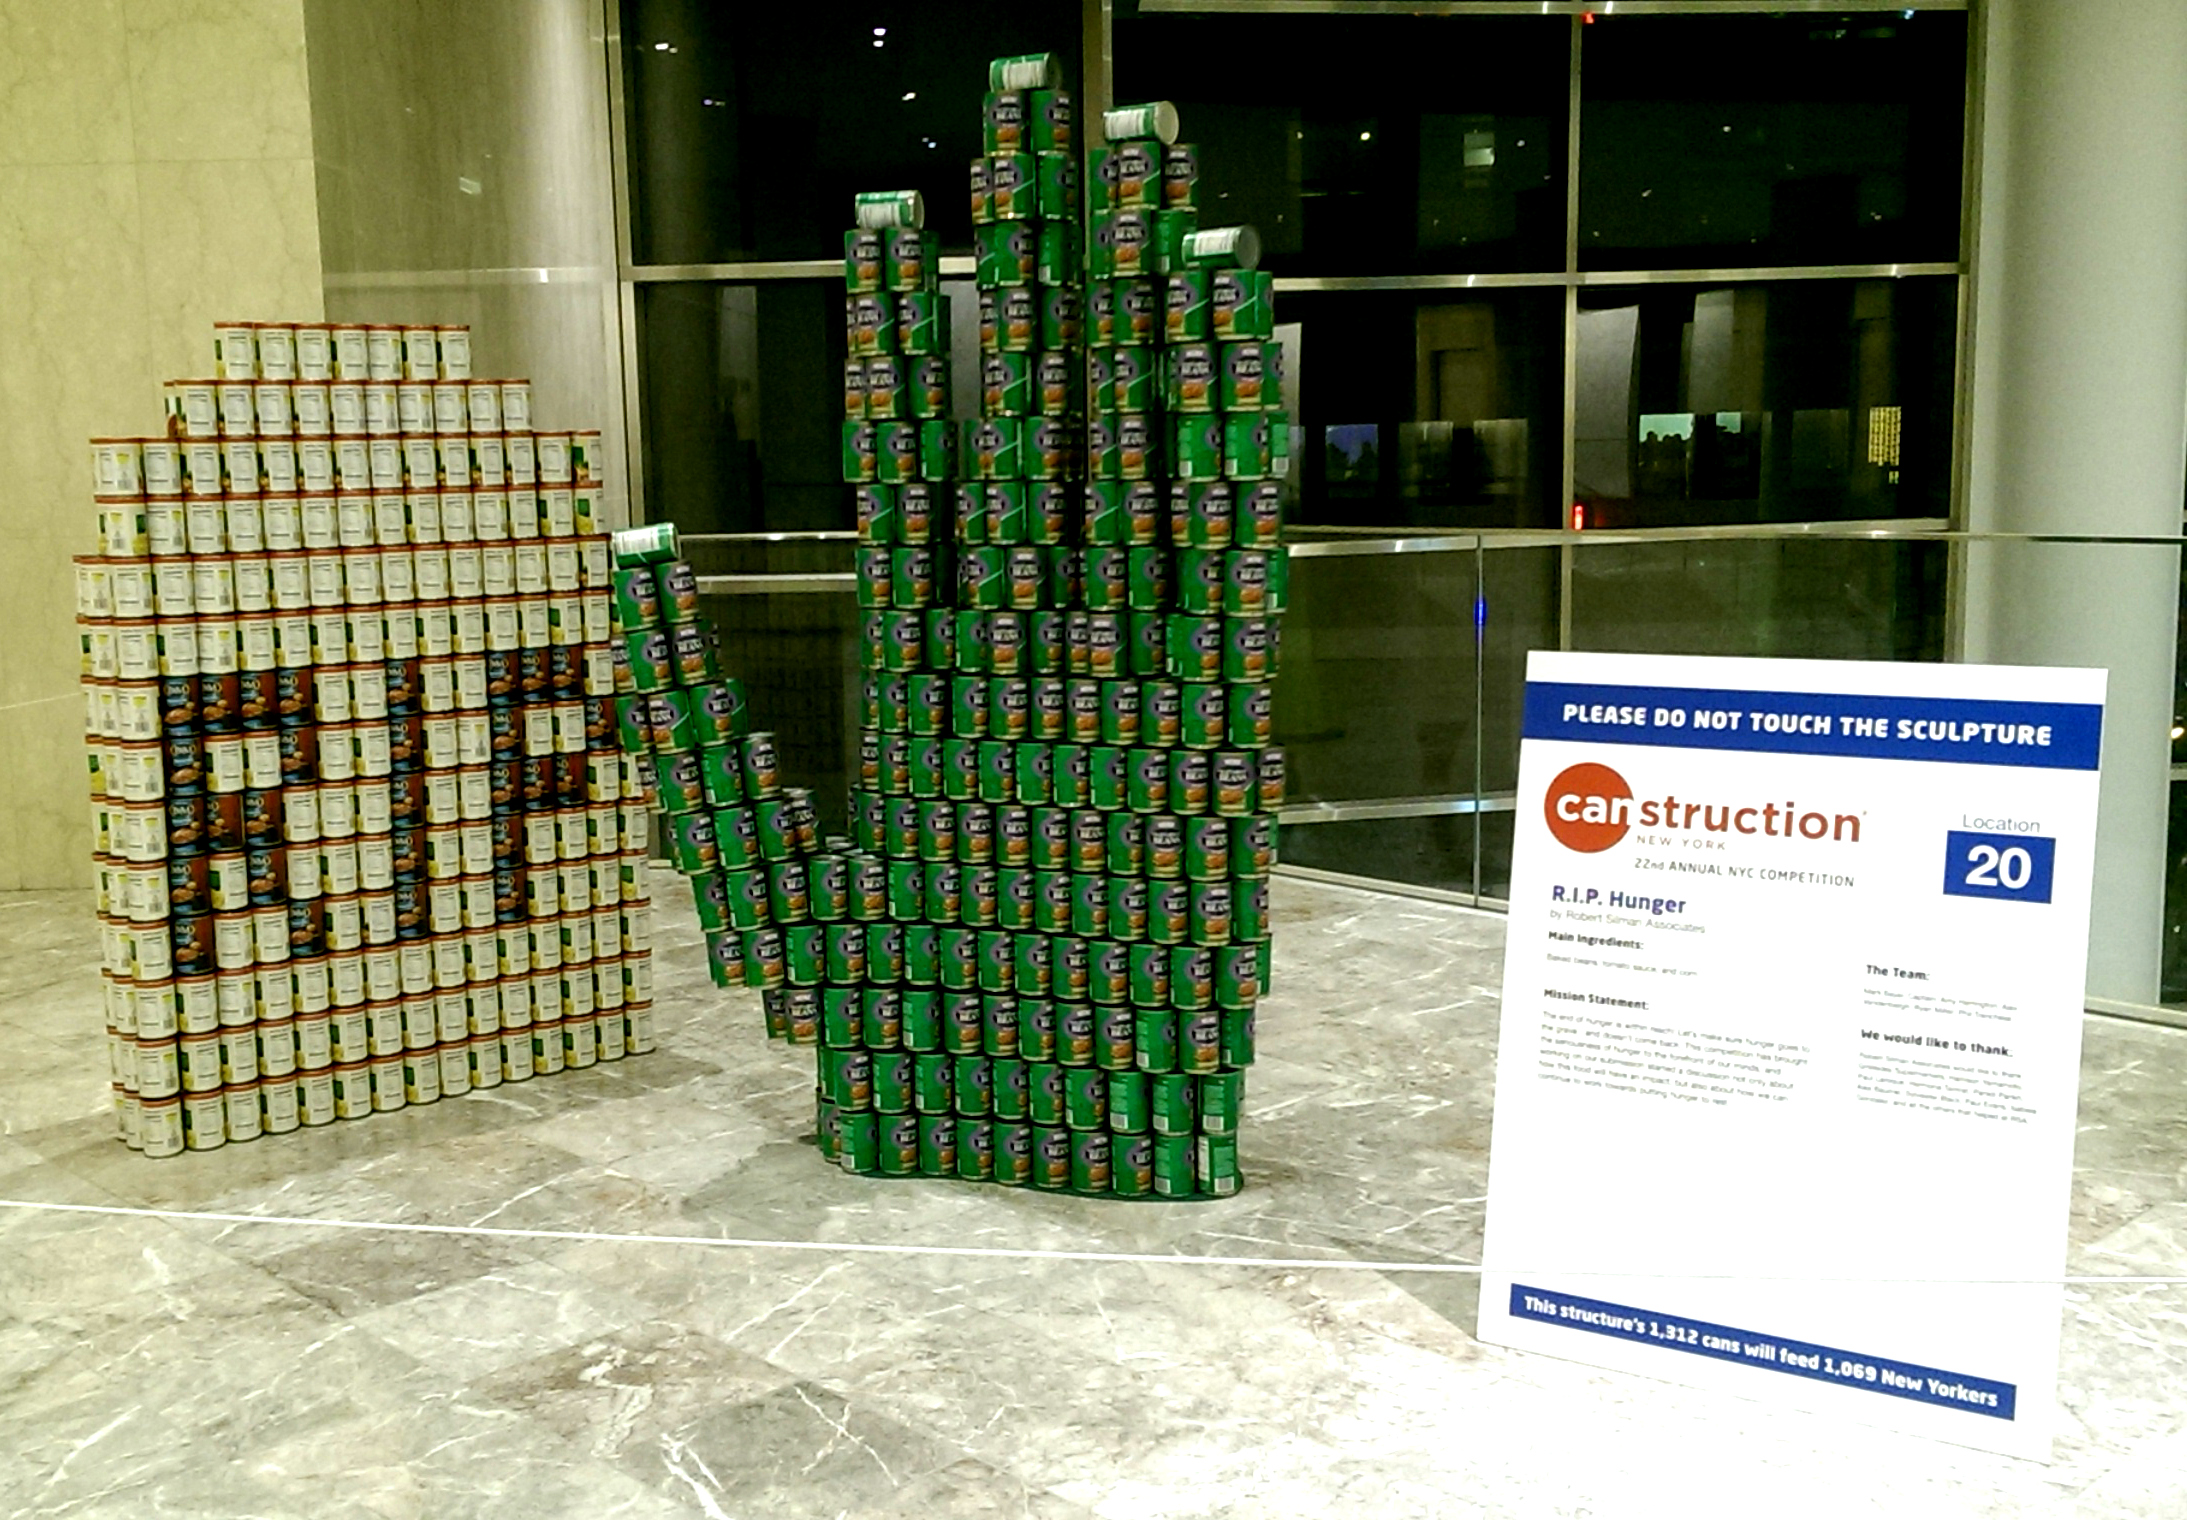 rip hunger canstruction